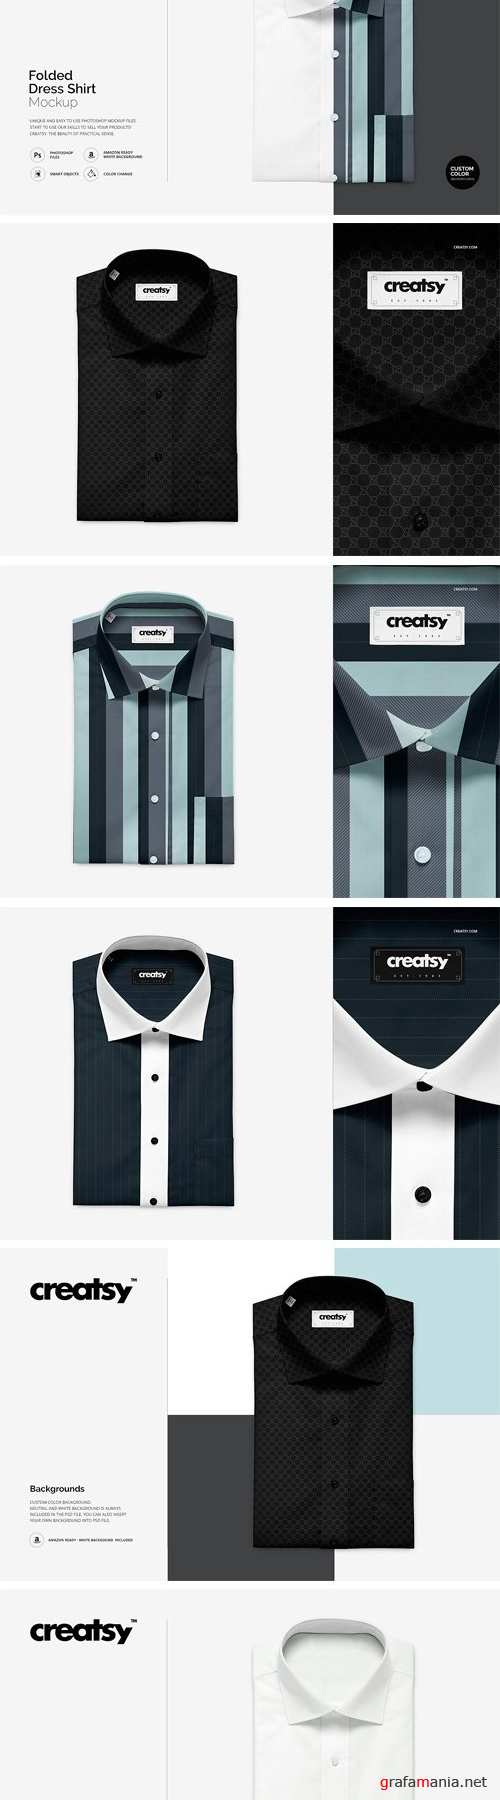 Folded Dress Shirt Mockup - 1411206